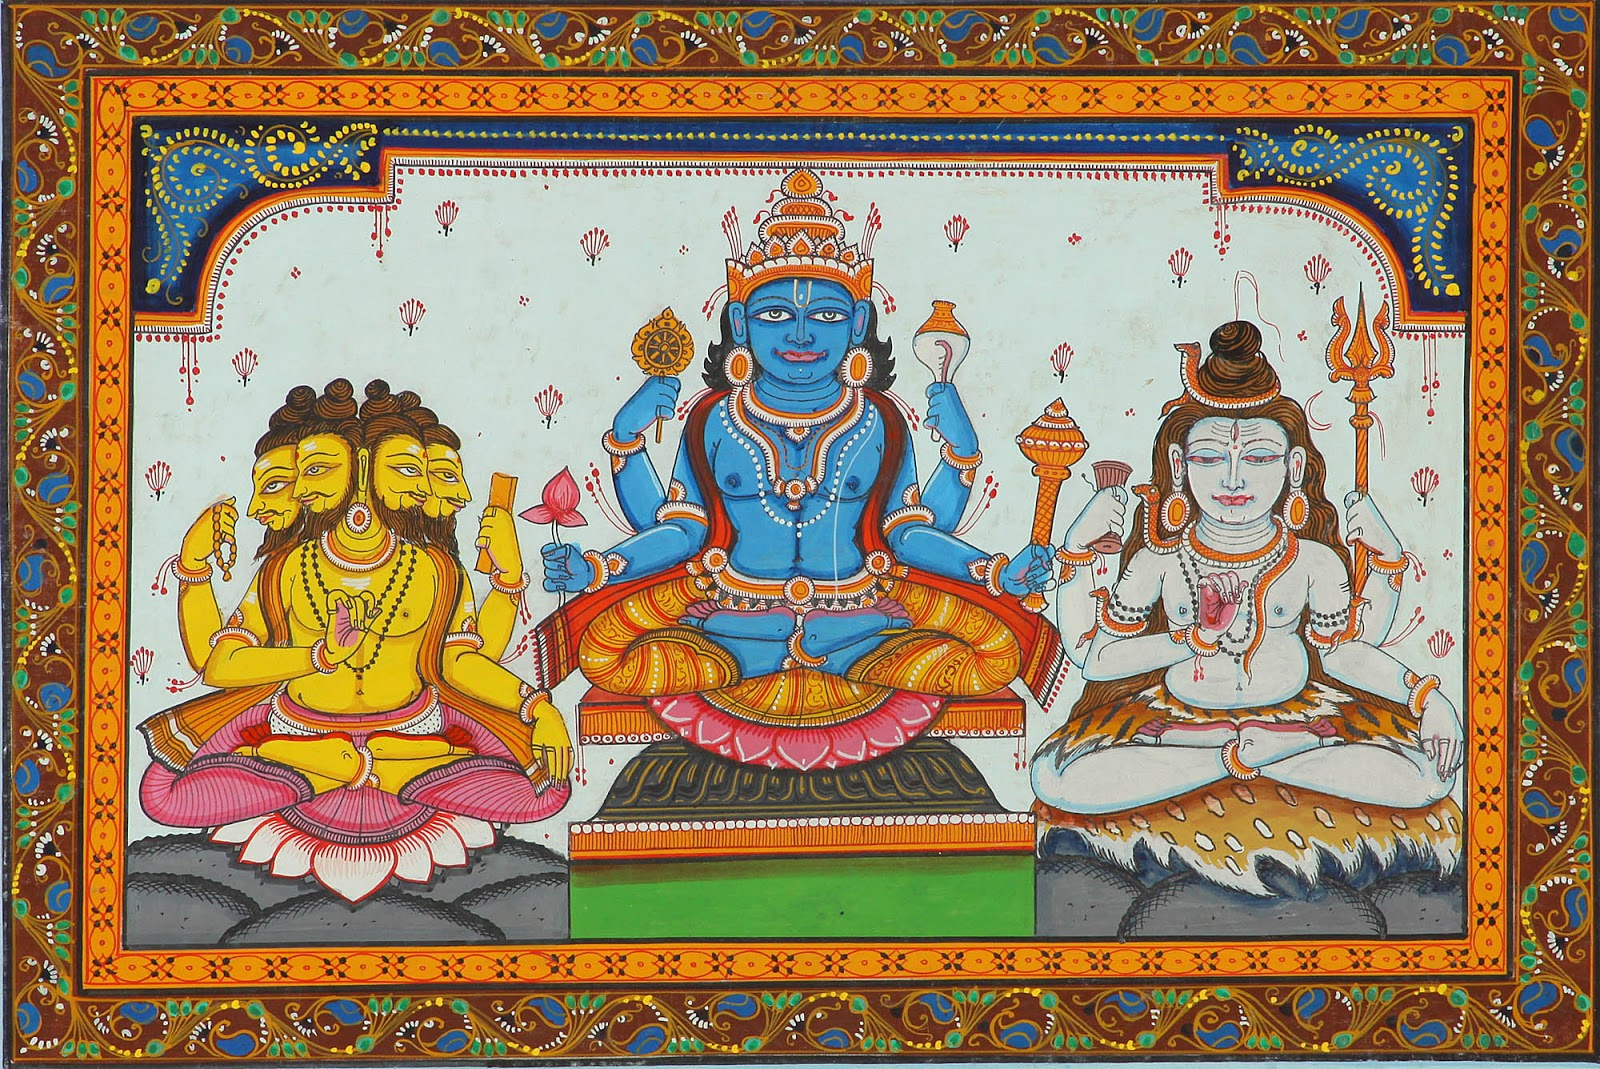 Lord Vishnu with Shiva and Brahma by Rabi Béhéra, Folkart from Temple Town, Puri (Orissa)